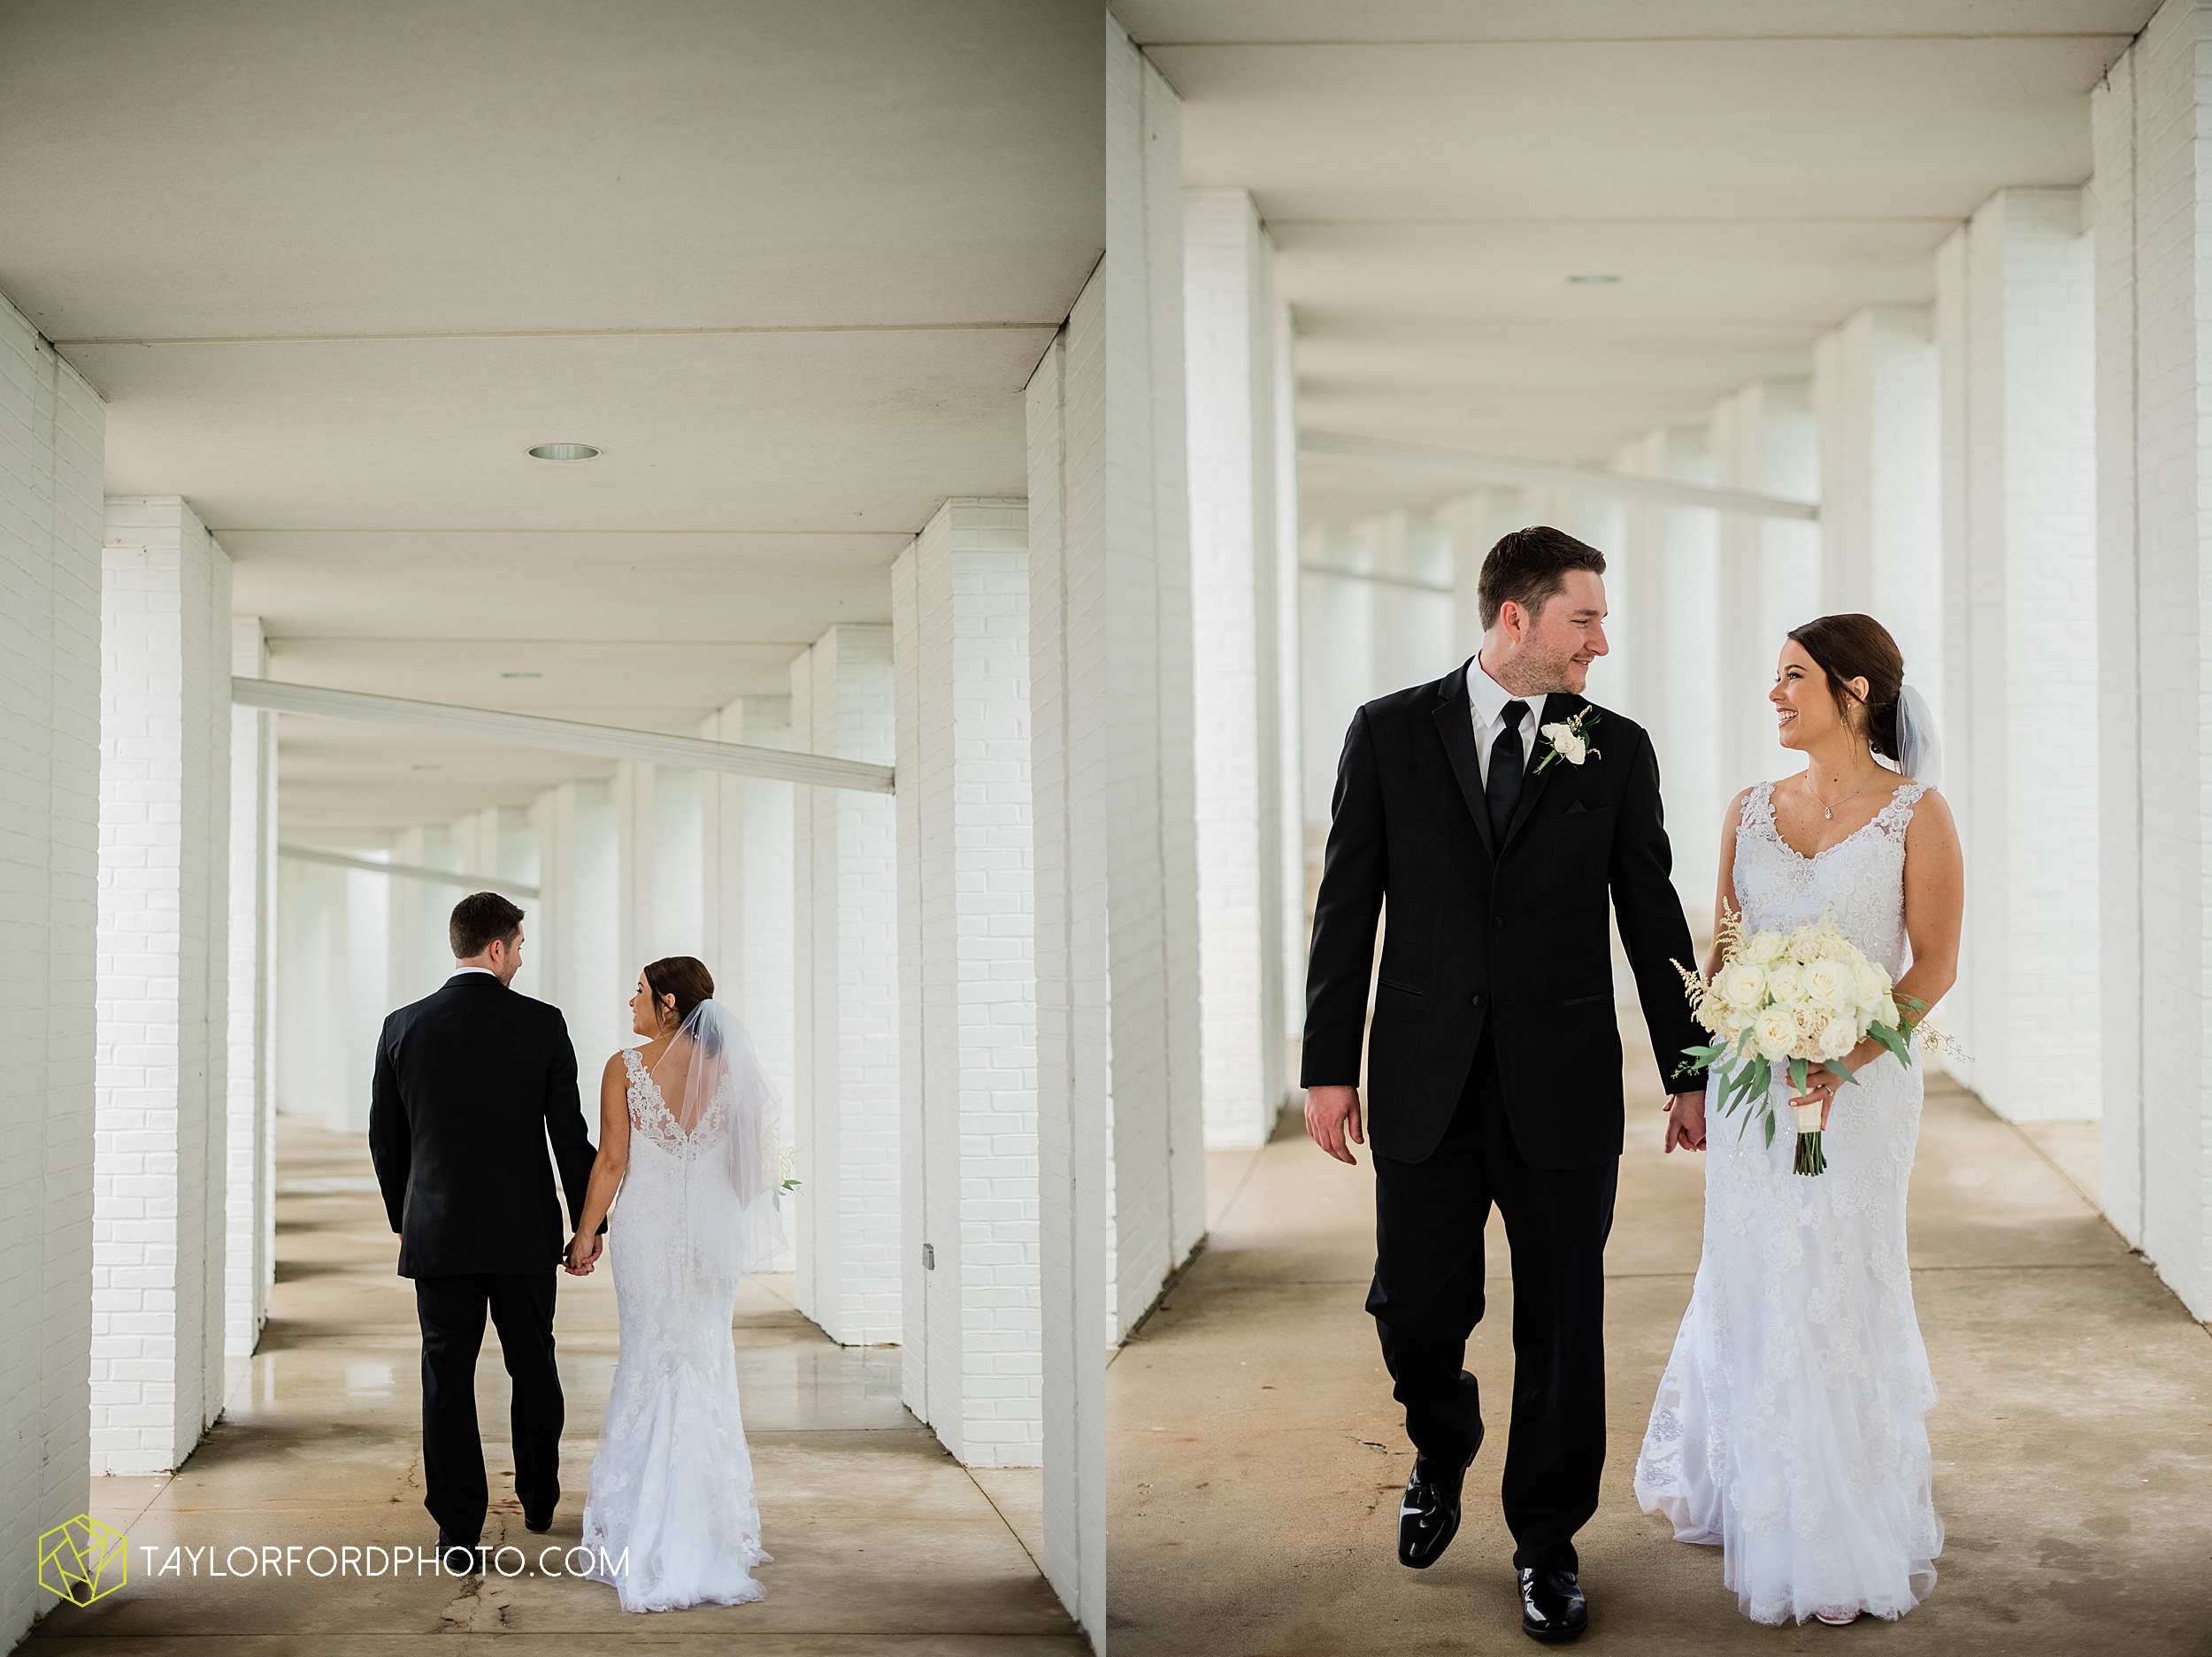 sullivan-st-francis-university-performing-arts-center-usf-saint-charles-borromeo-catholic-church-downtown-fort-wayne-indiana-wedding-photography-taylor-ford-hirschy-photographer_3236.jpg